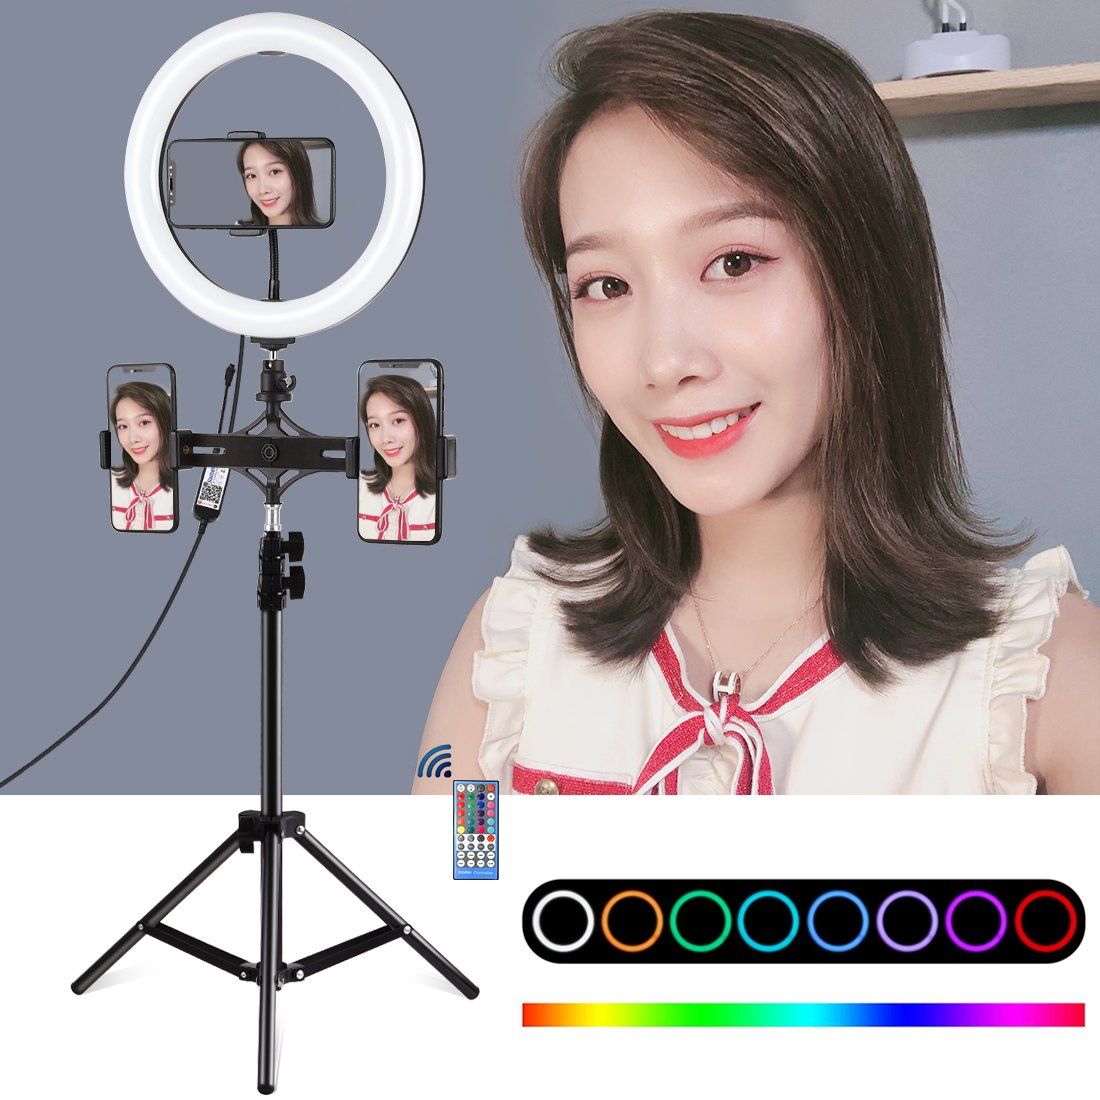 10.2 inch RBG dimmable remote control ring light, suitable for live broadcast